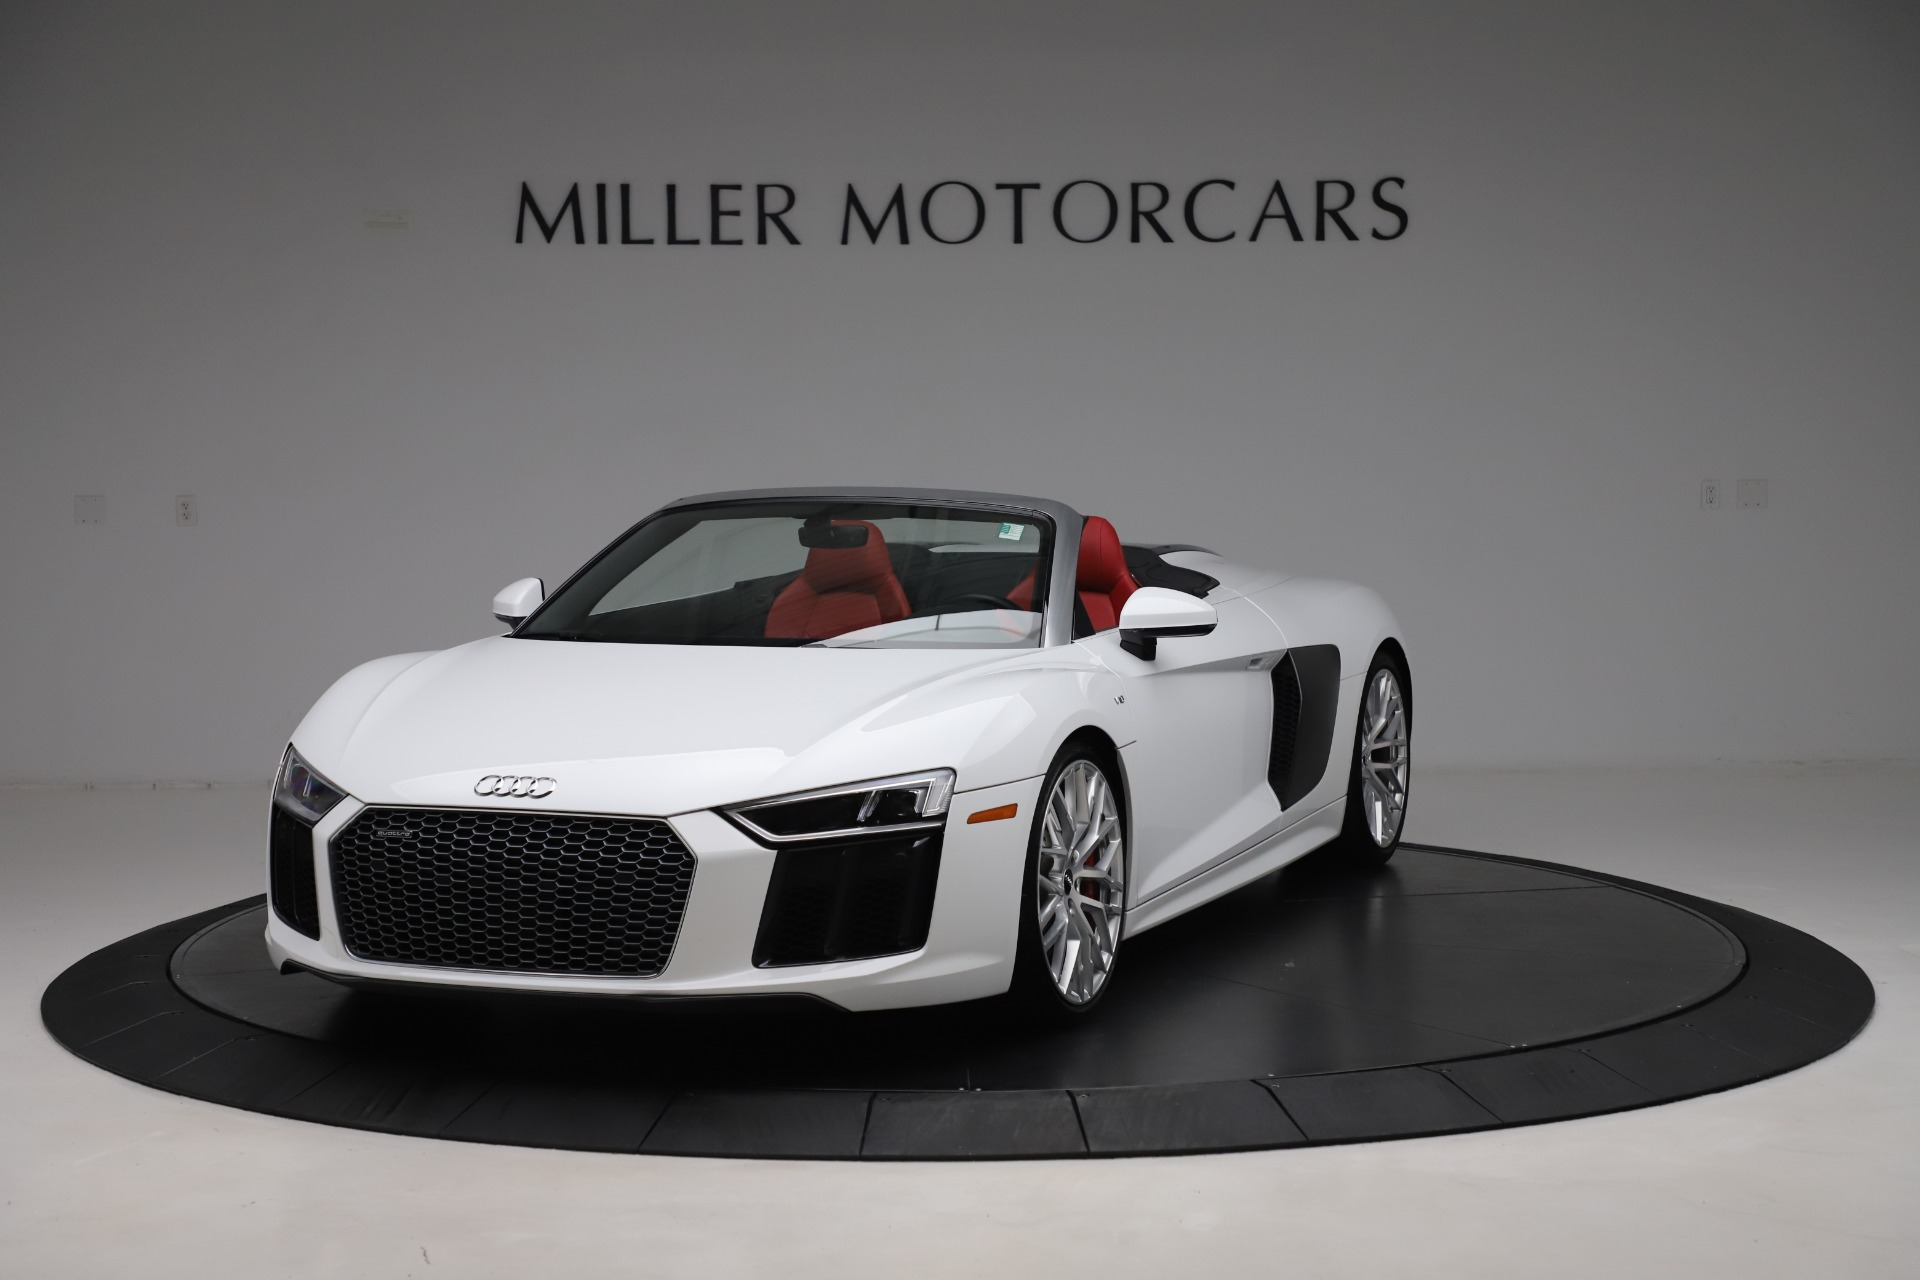 Used 2017 Audi R8 5.2 quattro V10 Spyder for sale $138,900 at McLaren Greenwich in Greenwich CT 06830 1